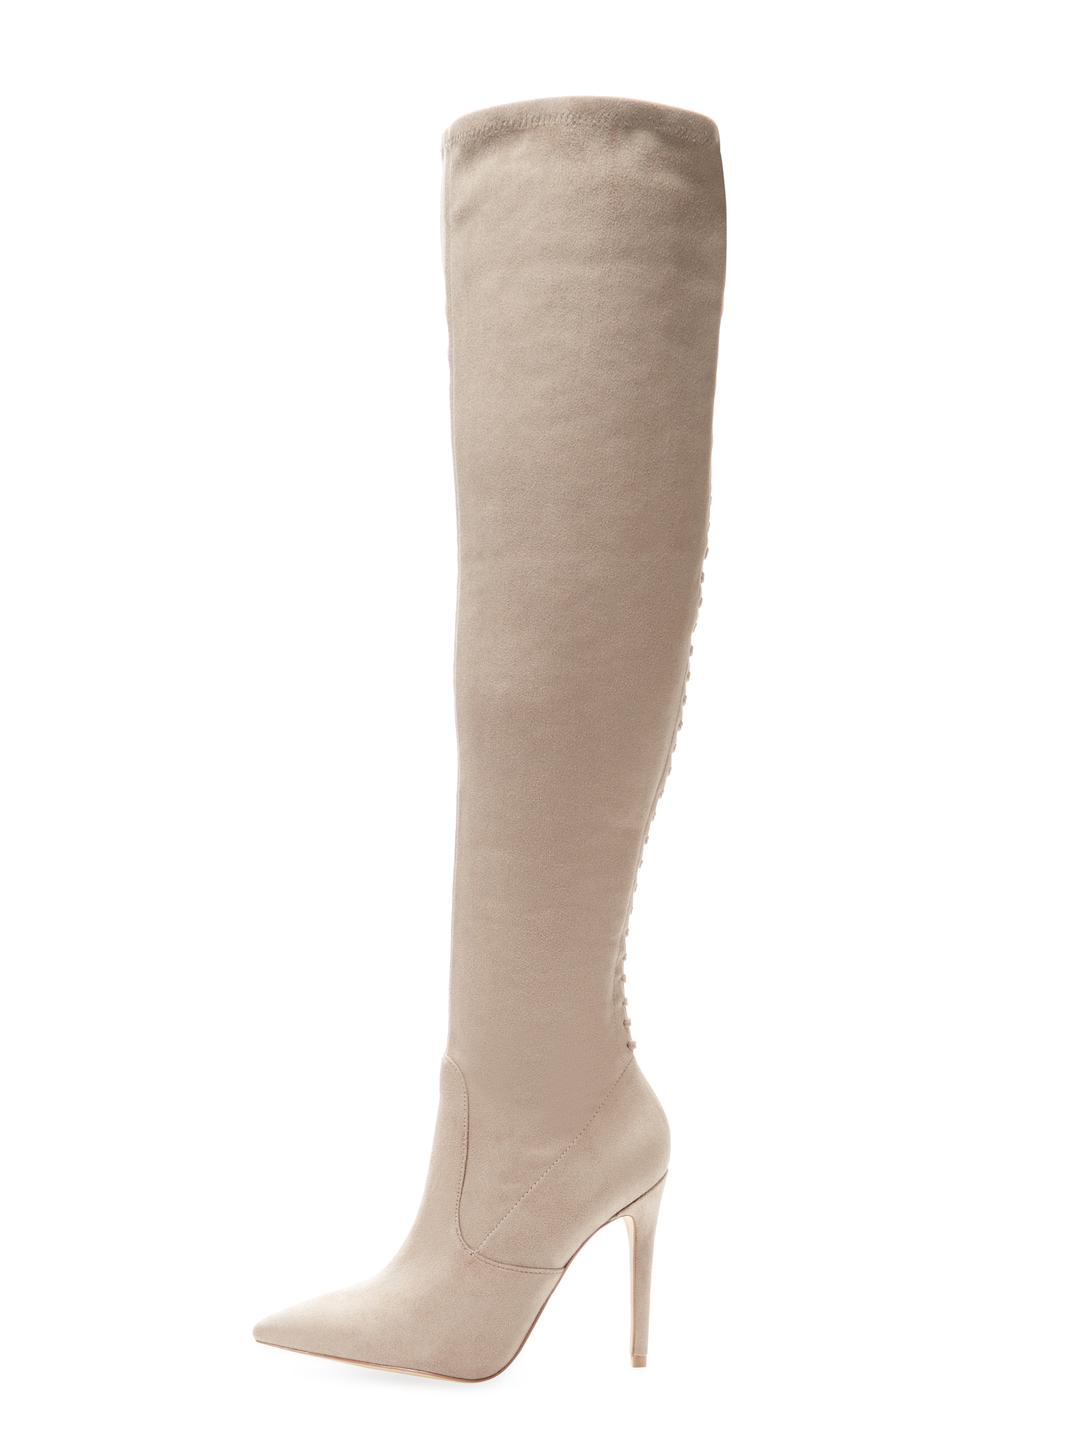 6fd9acfec0b Lyst - Kendall + Kylie Angela Over The Knee Boot in Brown